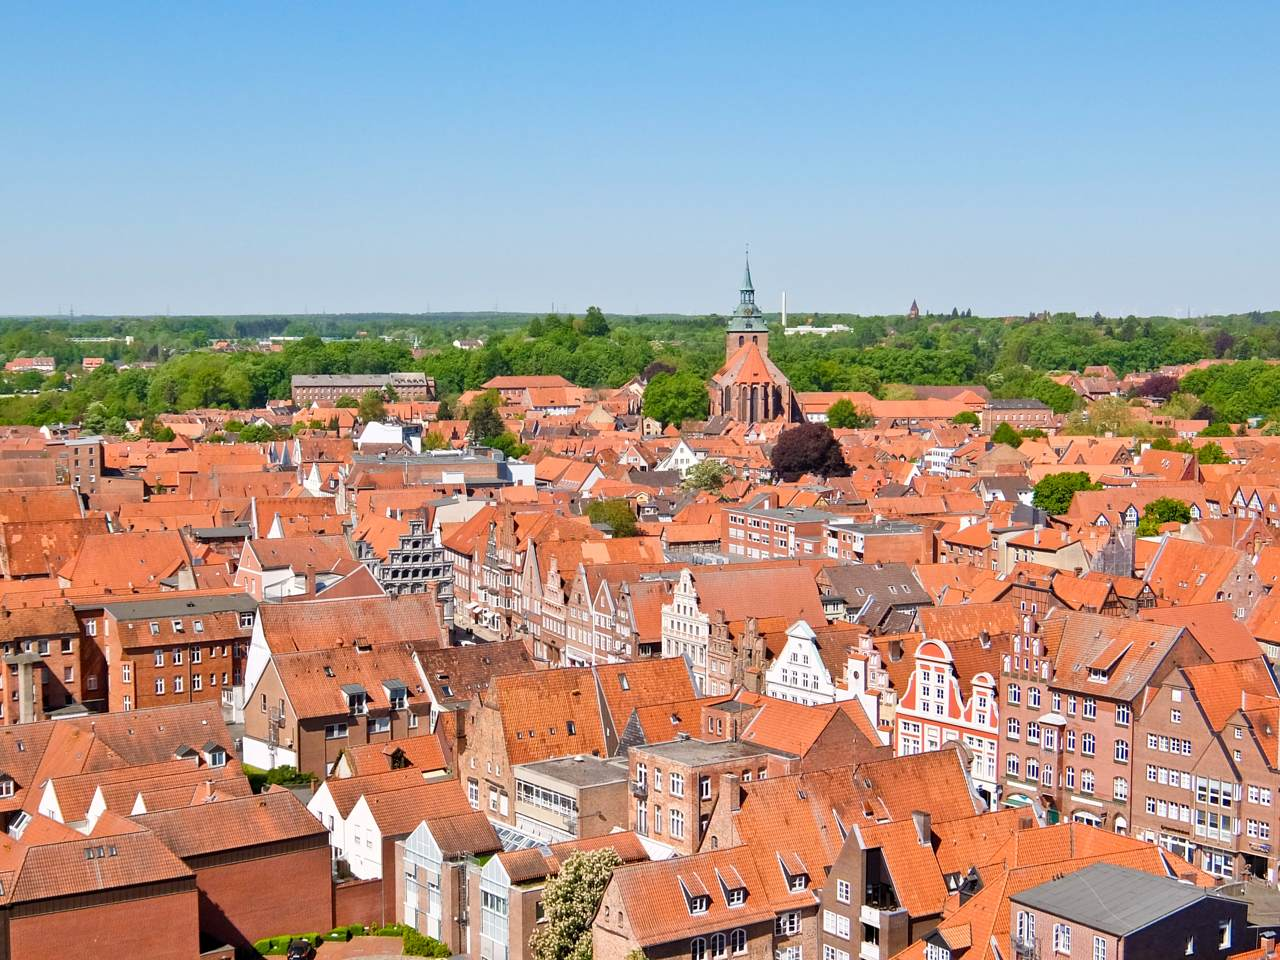 Luneburg rooftops